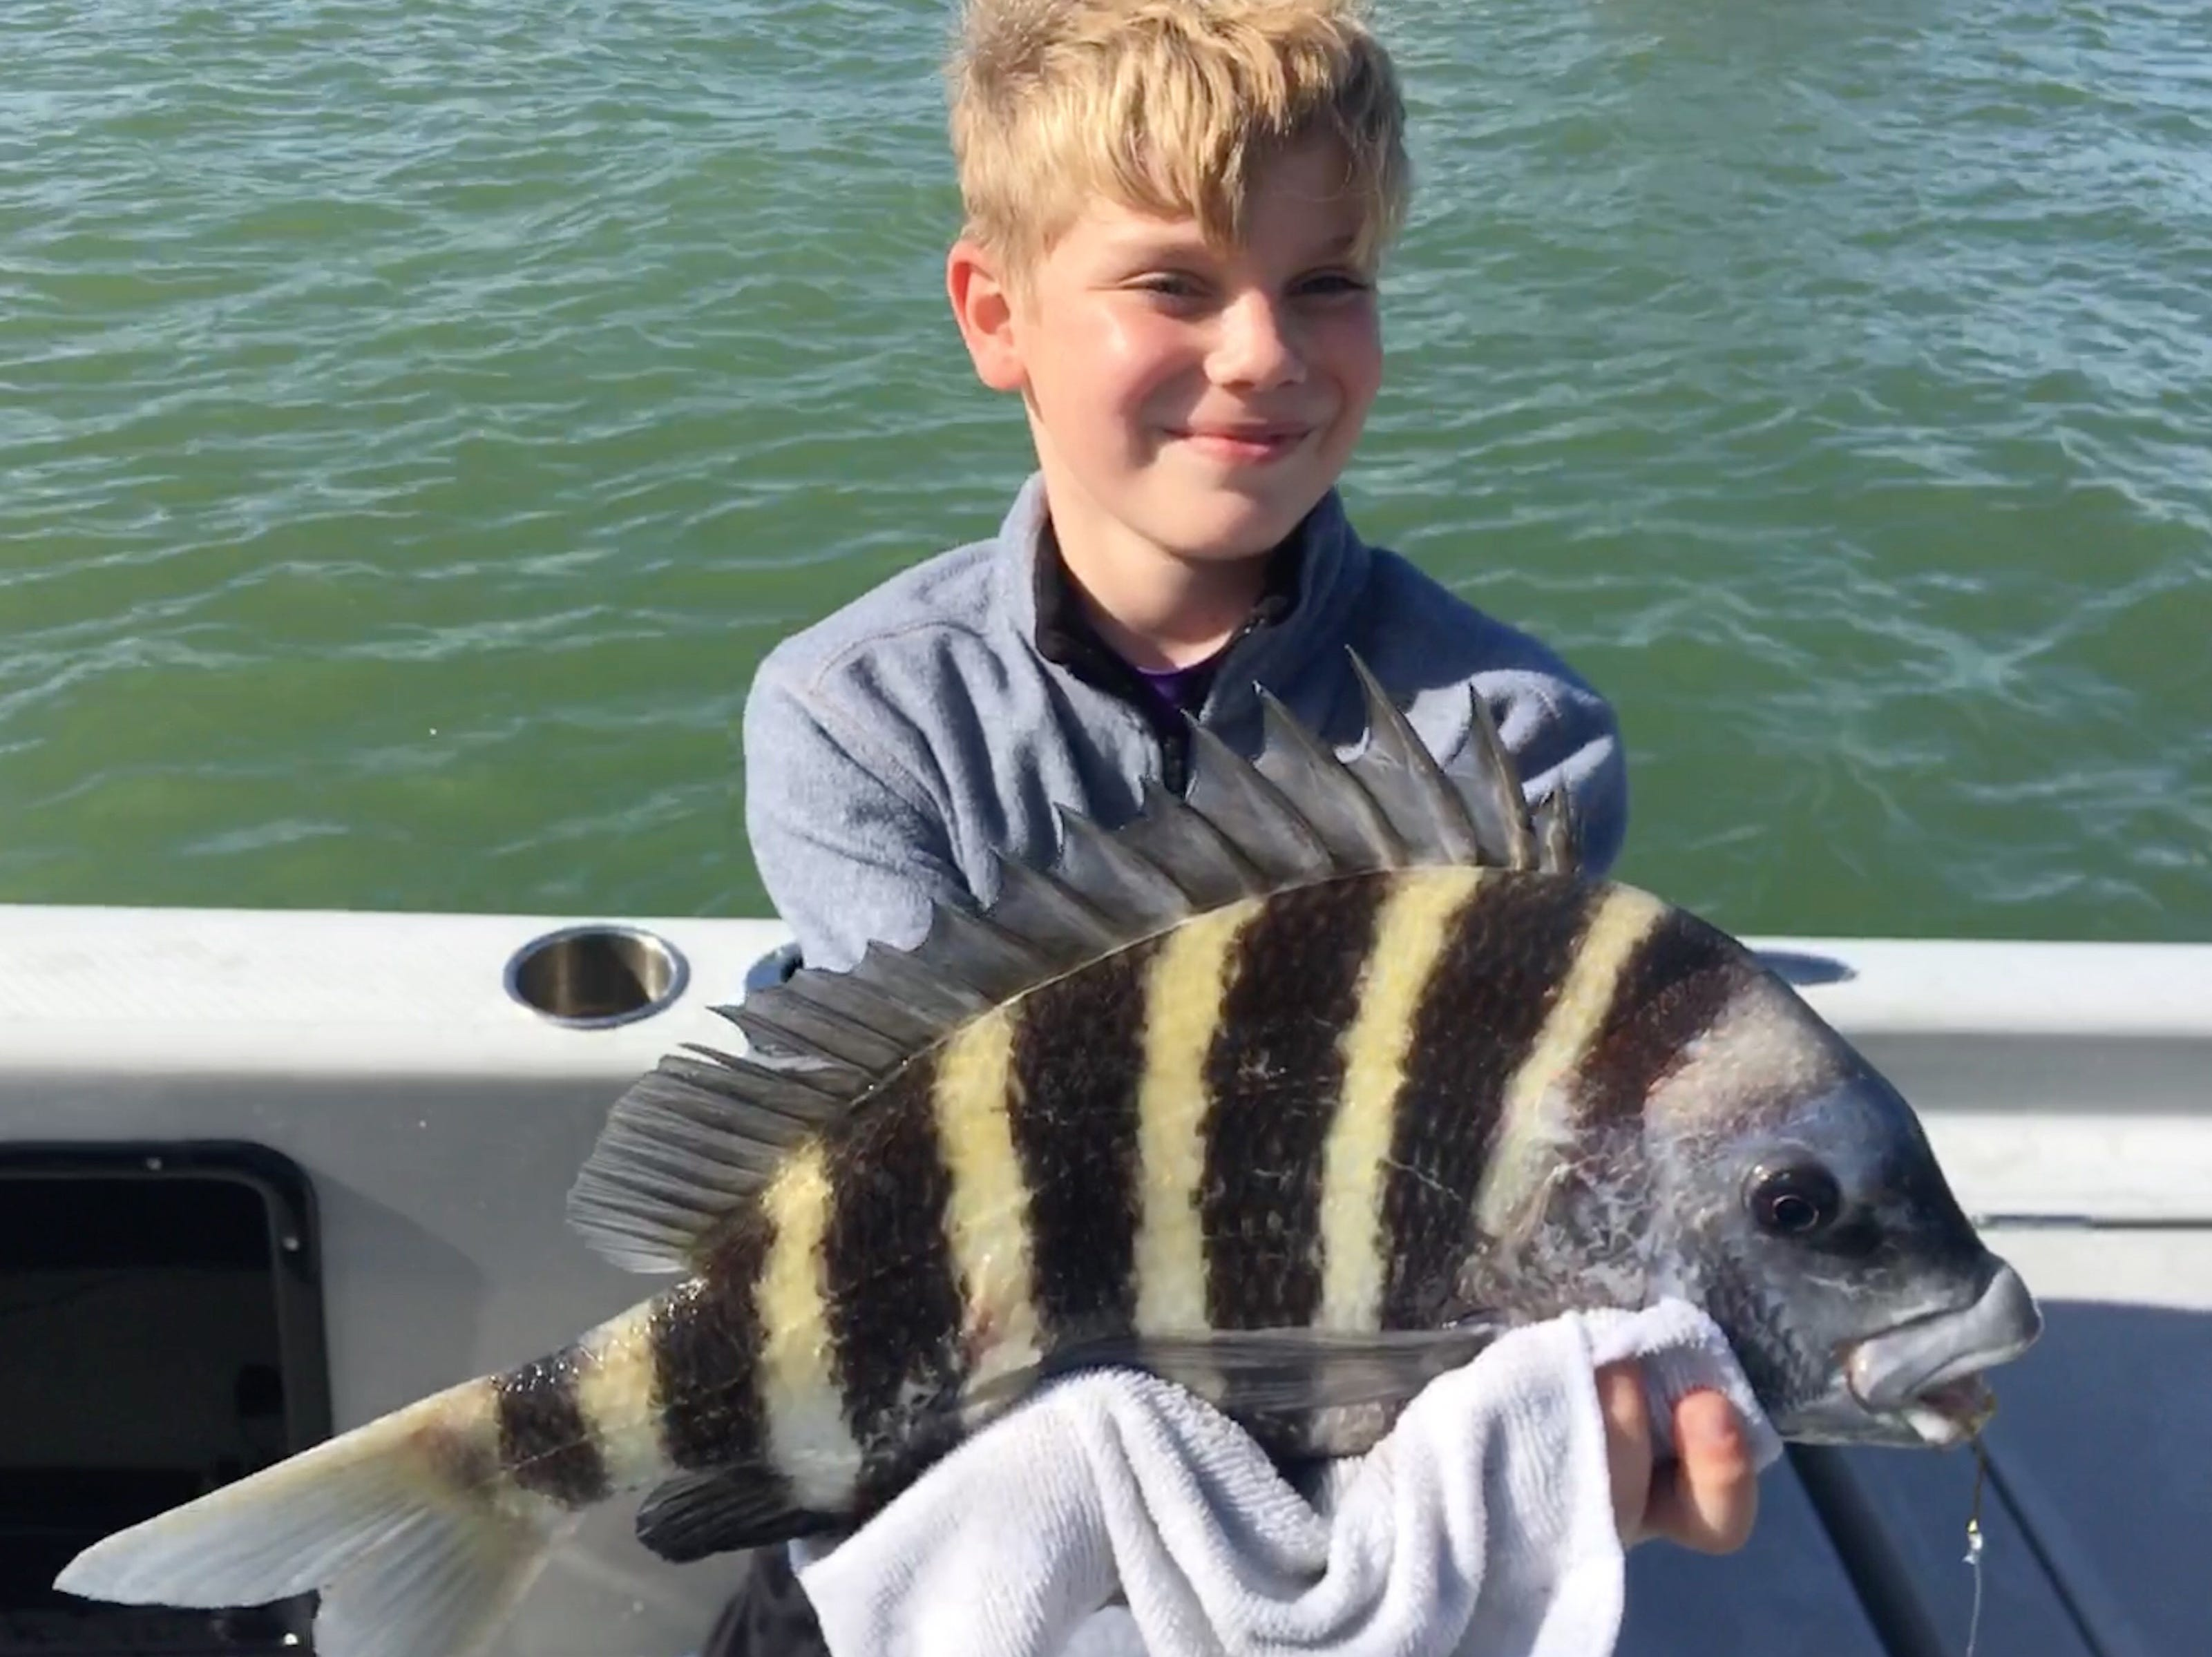 Fishingcast: Conditions for SWFL, Jan. 11-17